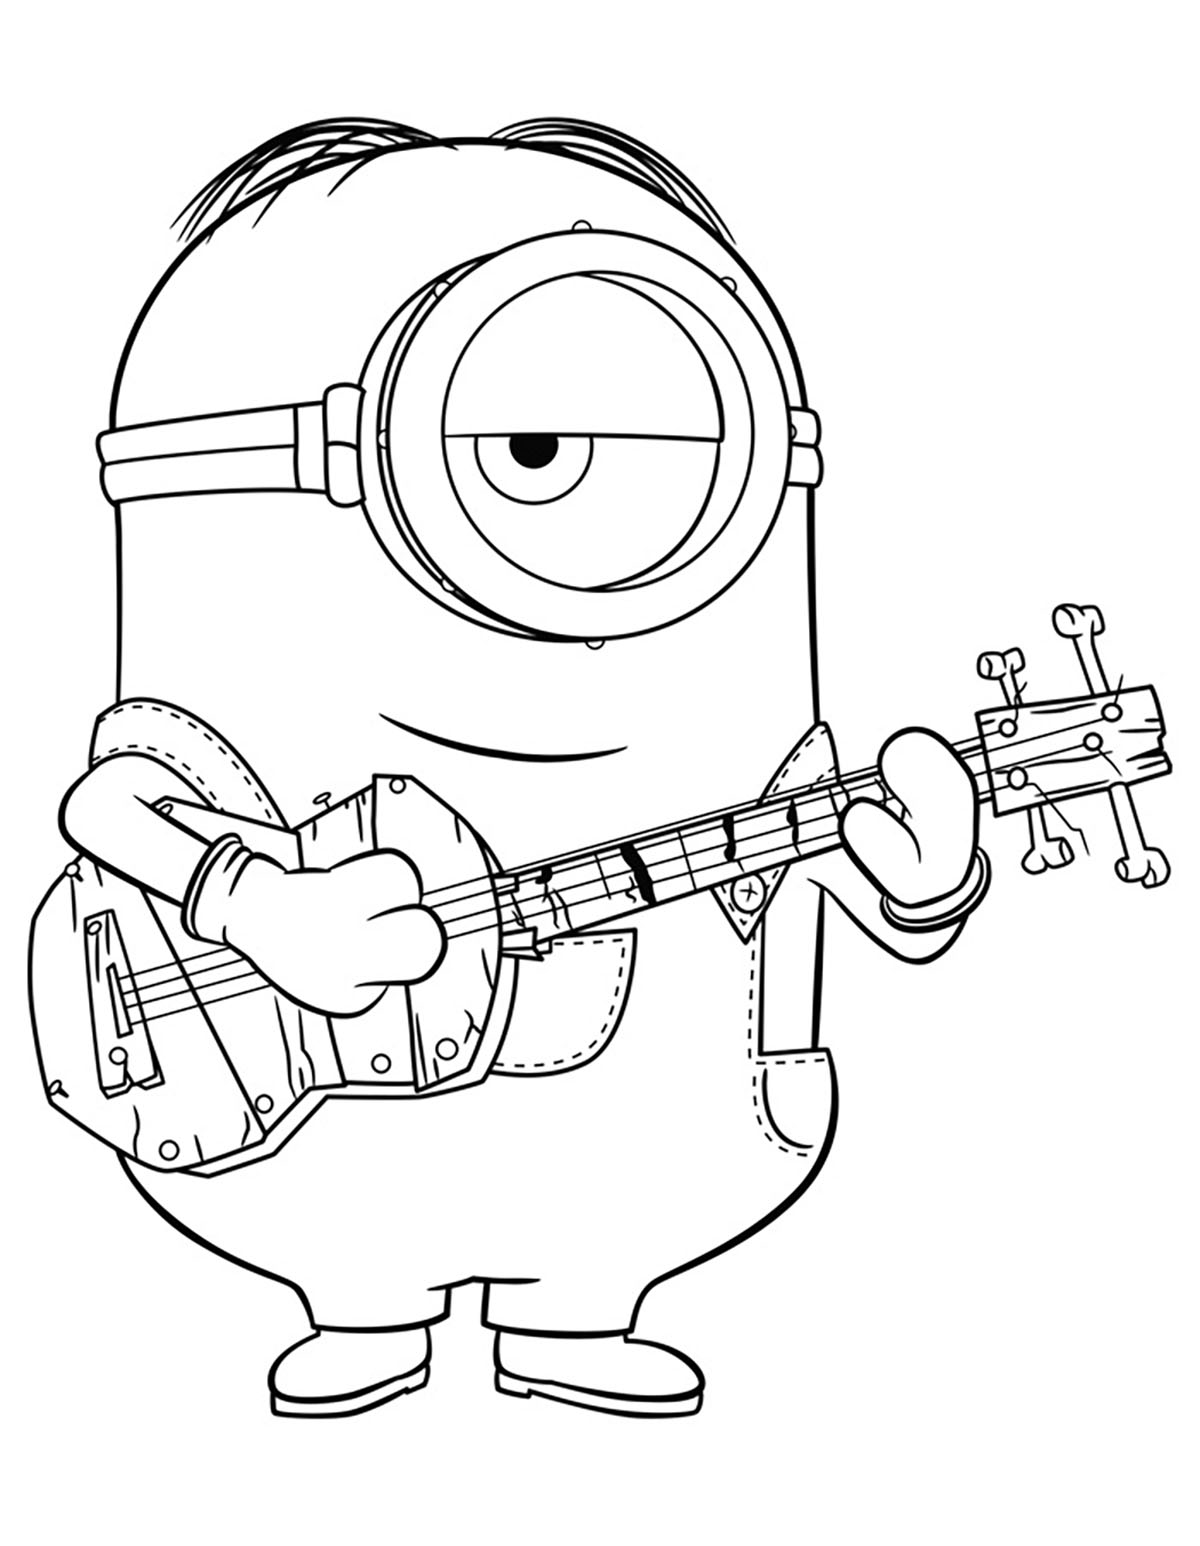 minion coloring minions coloring pages free printable minions coloring pages coloring minion